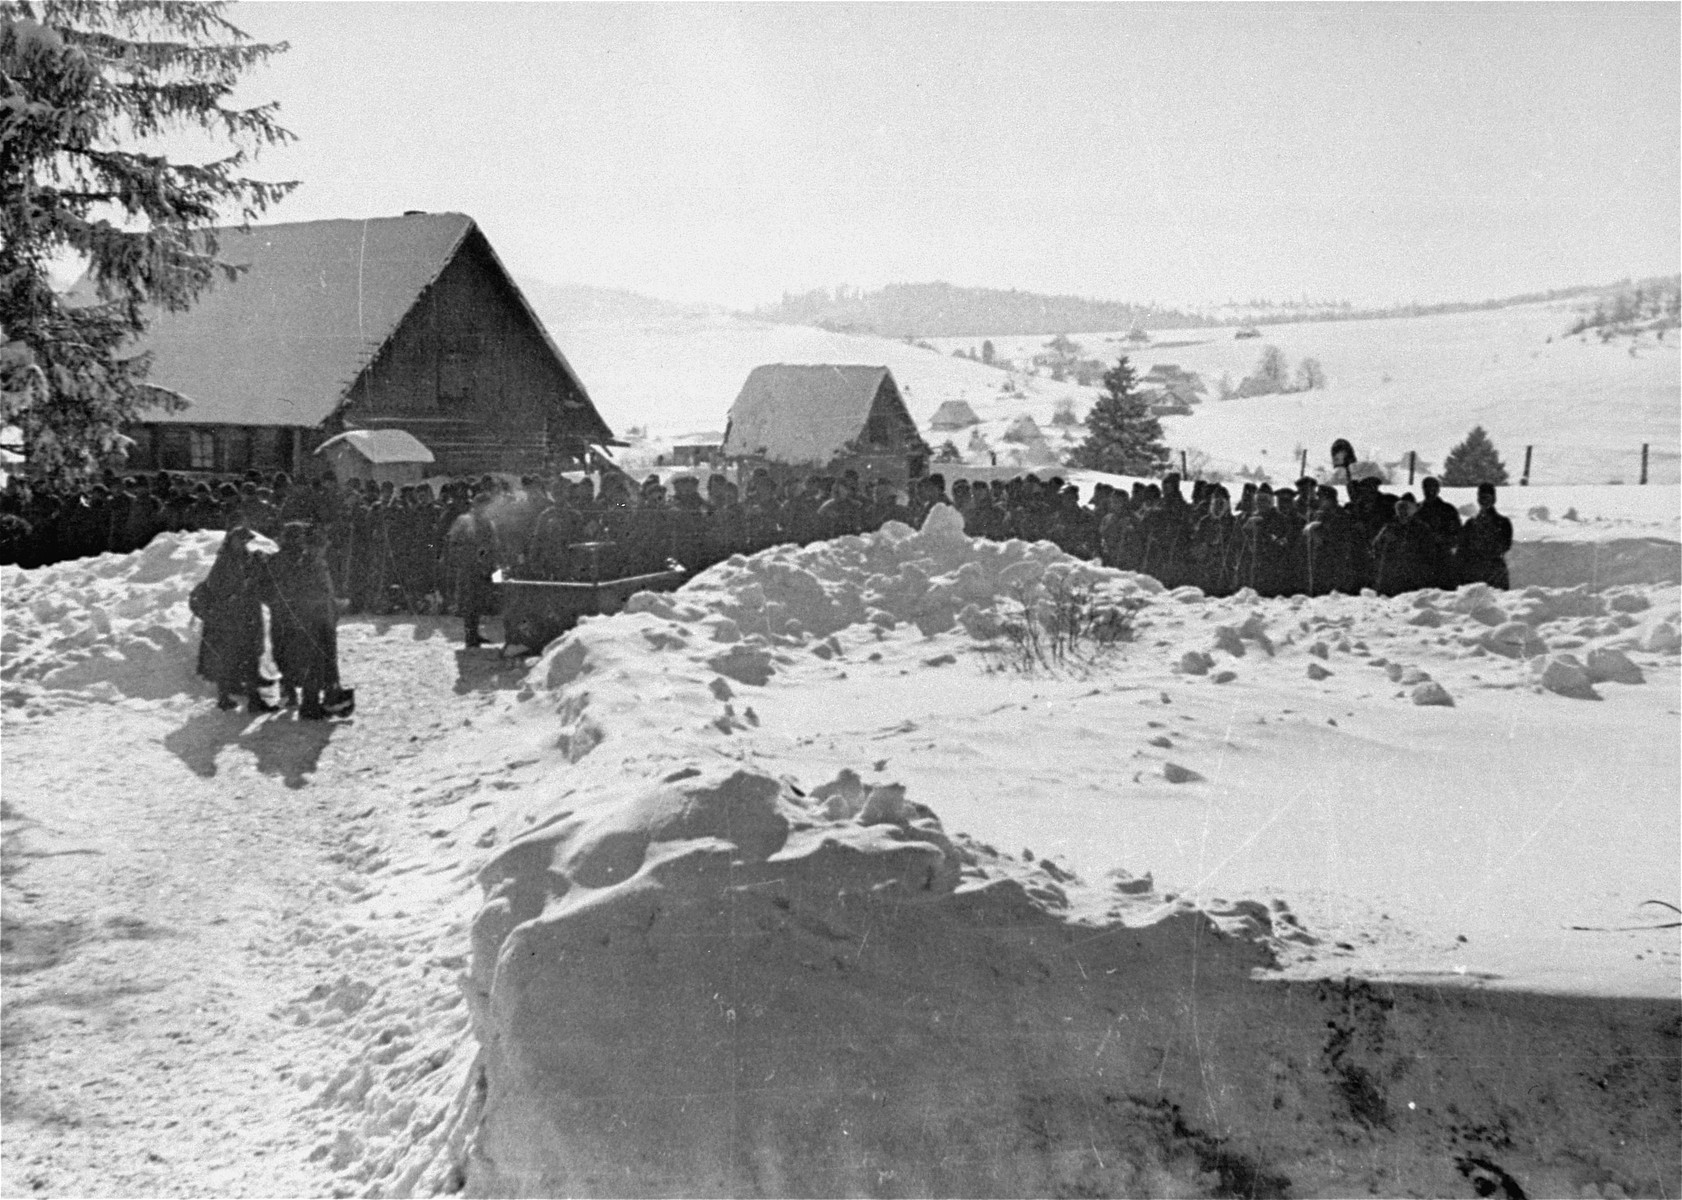 Jewish conscripts in Company 108/57 of the Hungarian Labor Service assembled for work clearing snow from roads.